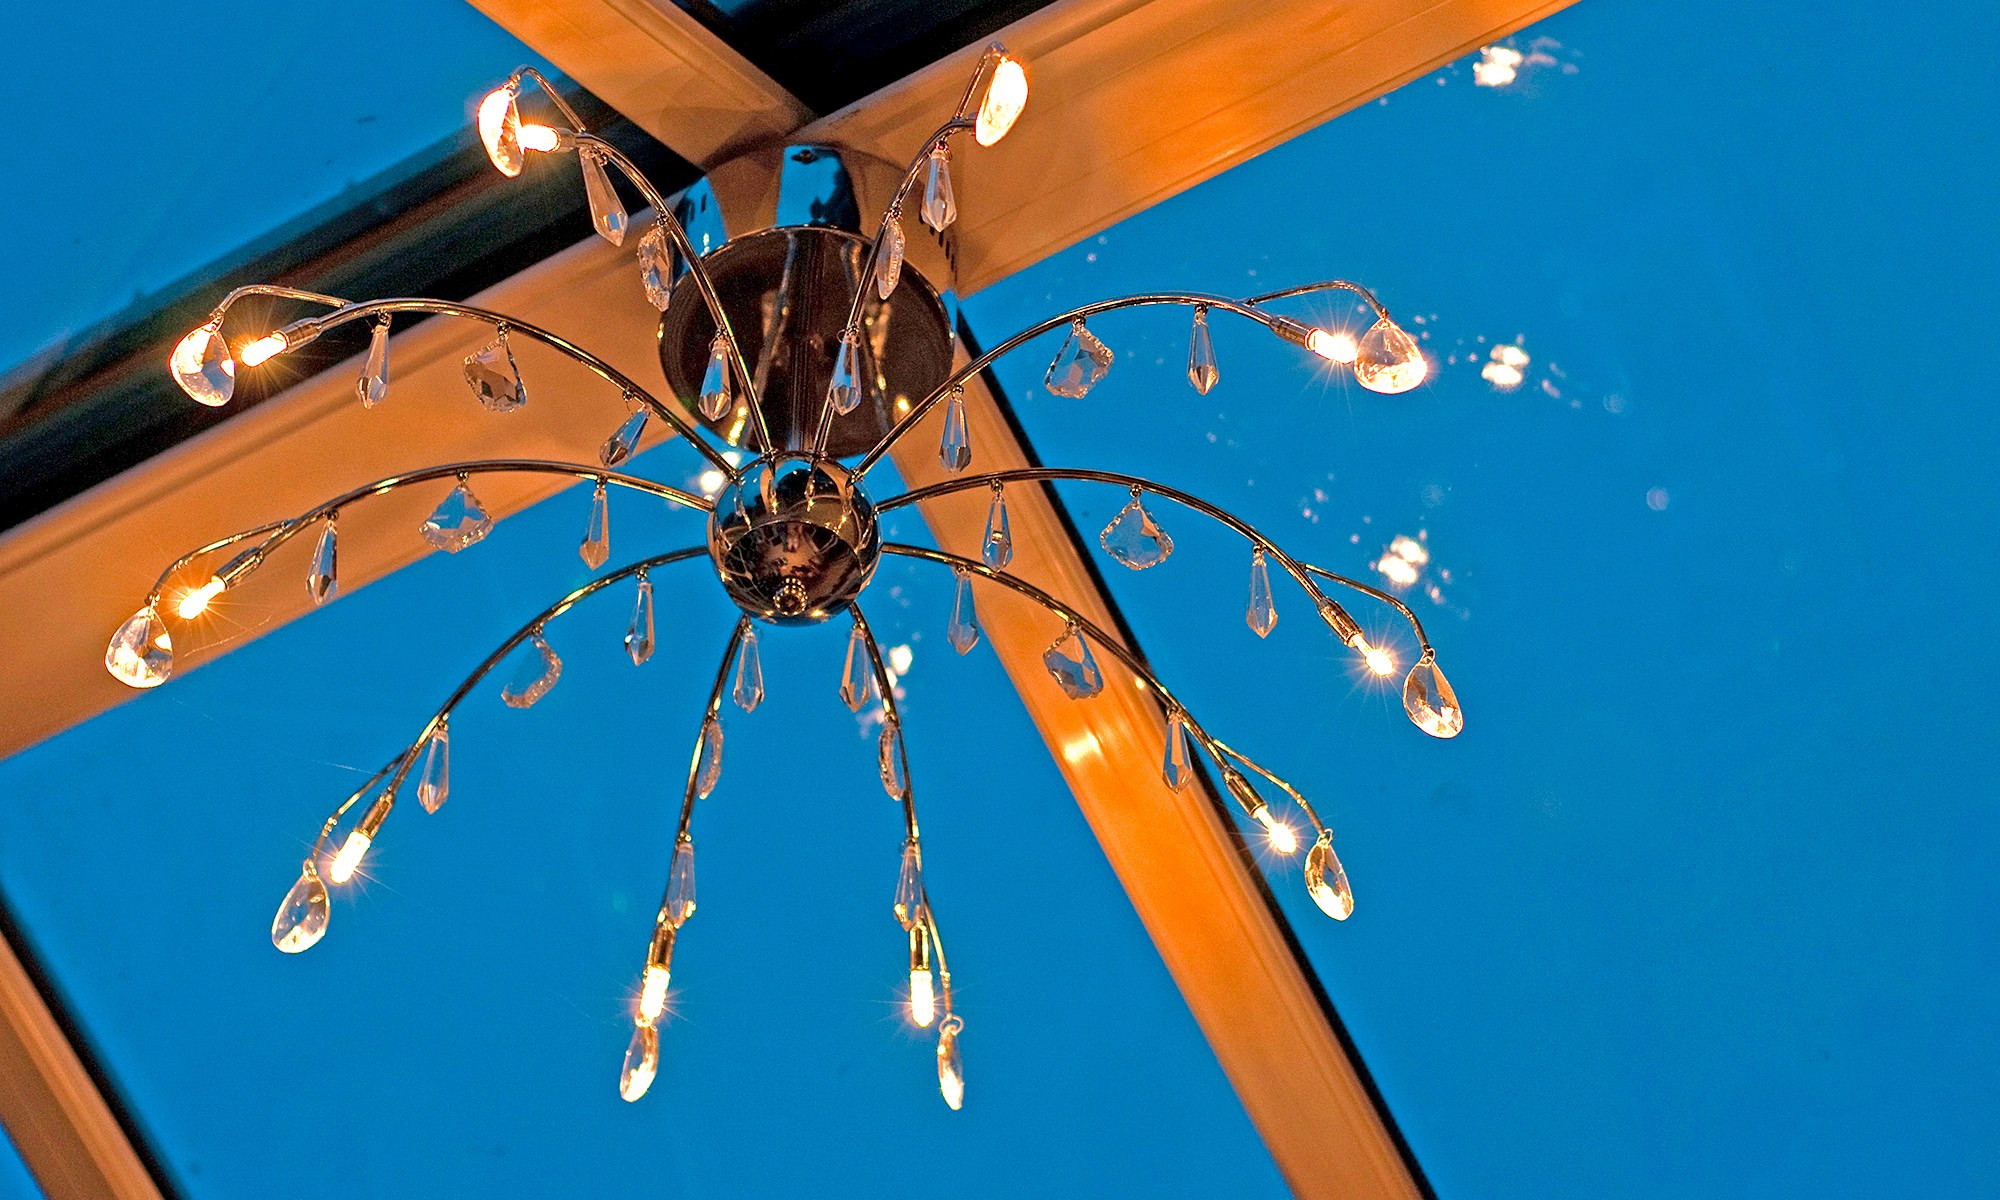 Conservatory Light Fitting Detail